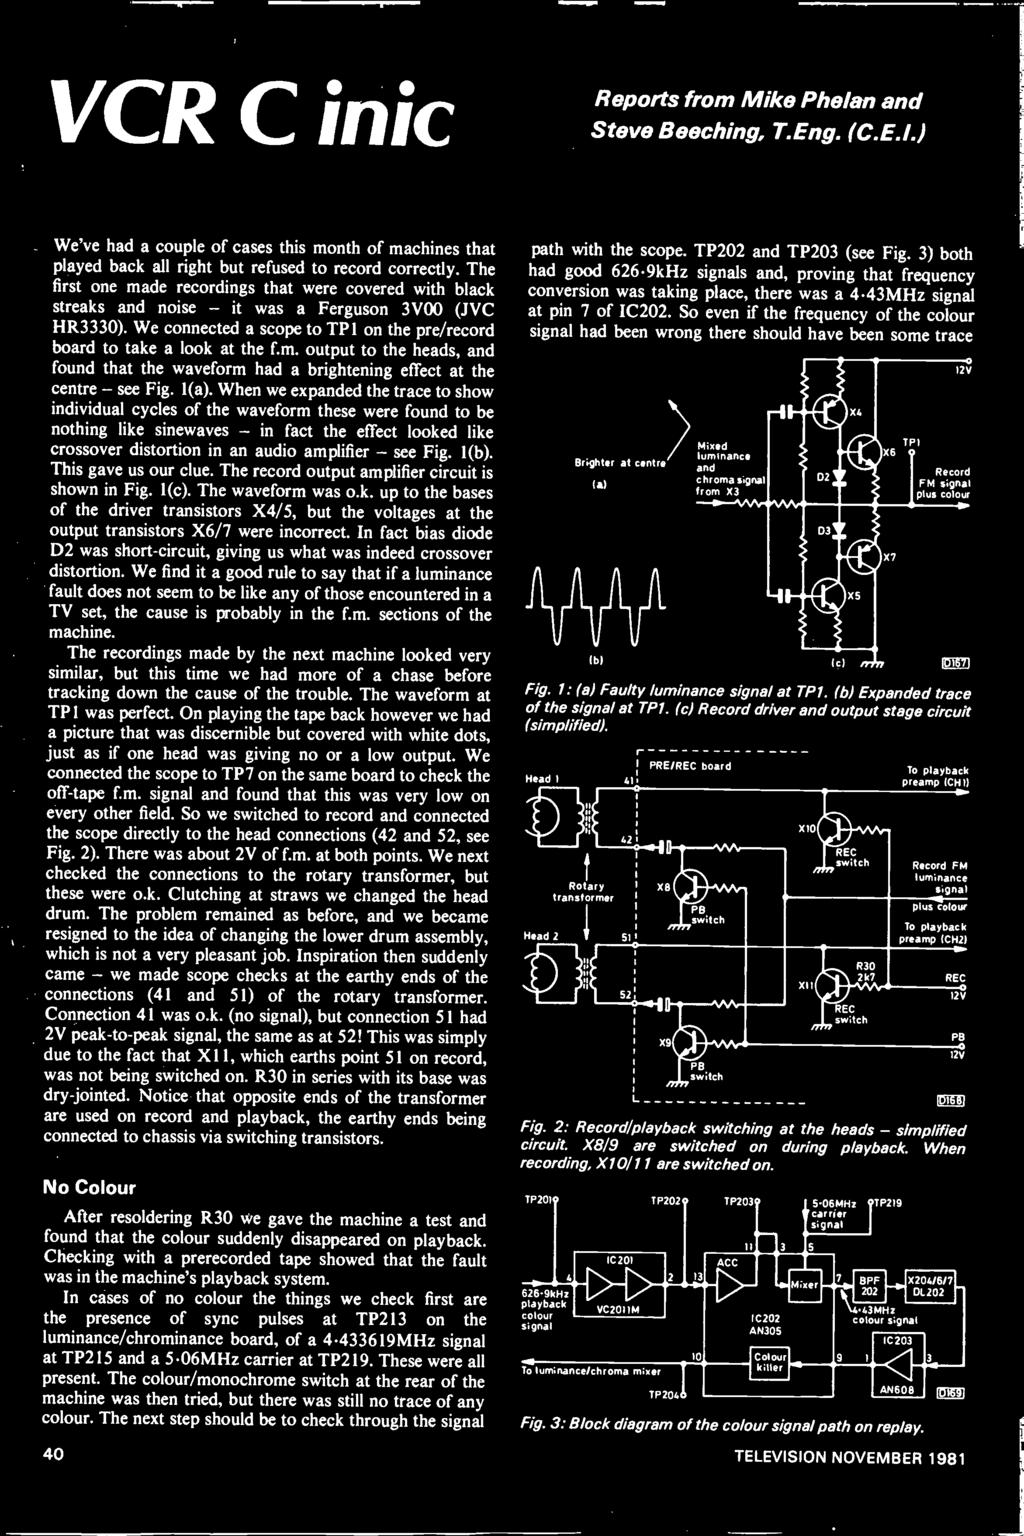 Tv Receiver Design The Pdf Alternating Flashing Leds Circuit Using Tlc555 2n2222 1a When We Expanded Trace To Show Individual Cycles Of